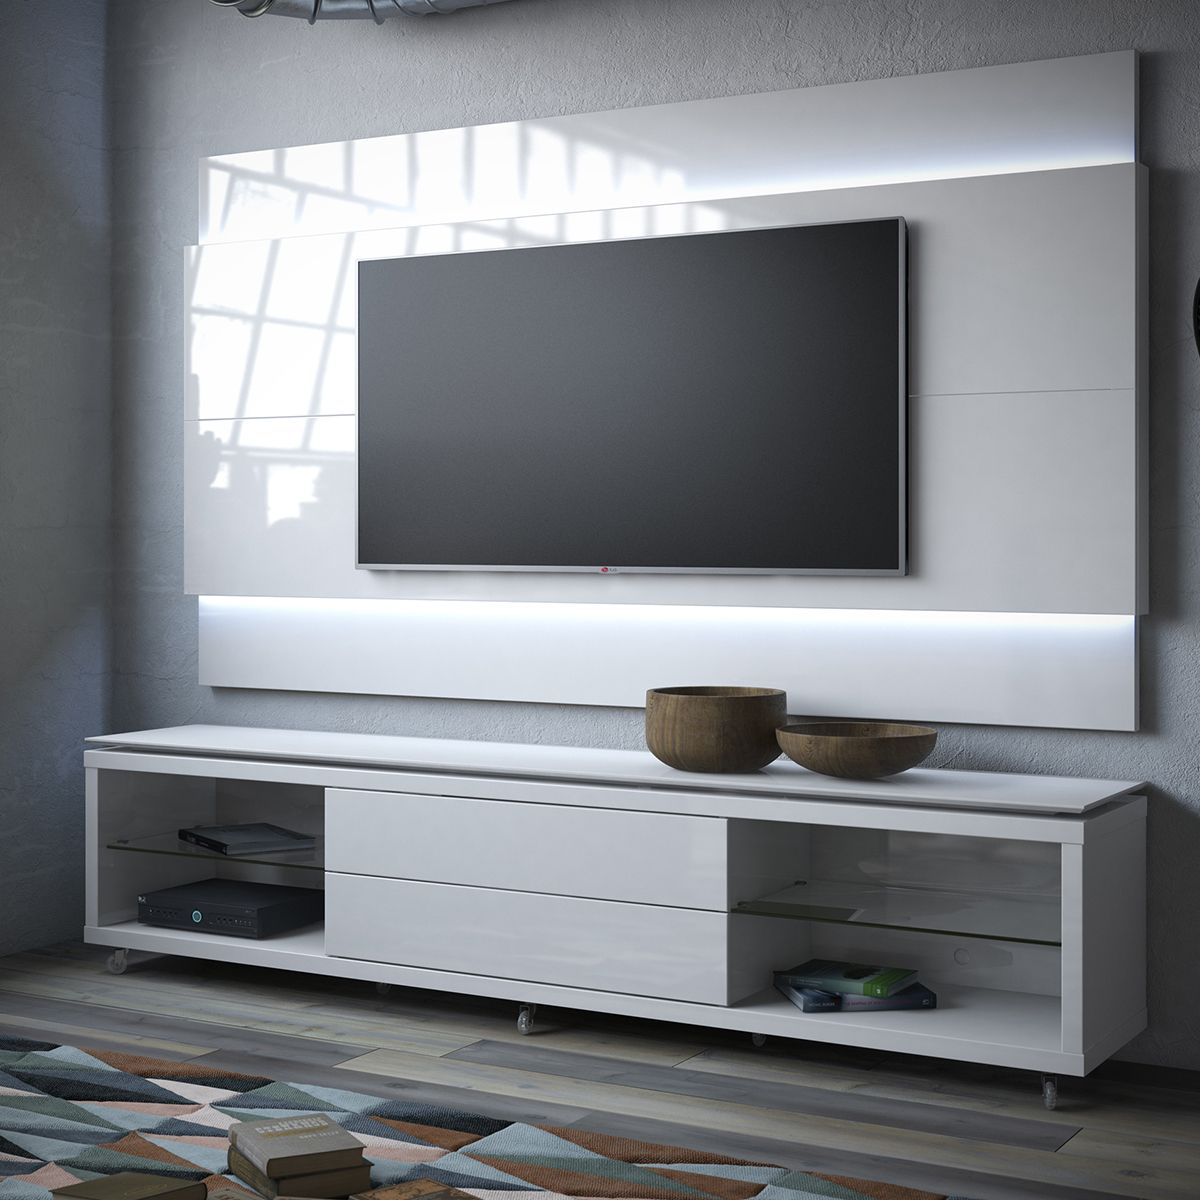 manhattan comfort lincoln tv stand w casters lincoln floating wall tv panel 1 9 w led in. Black Bedroom Furniture Sets. Home Design Ideas